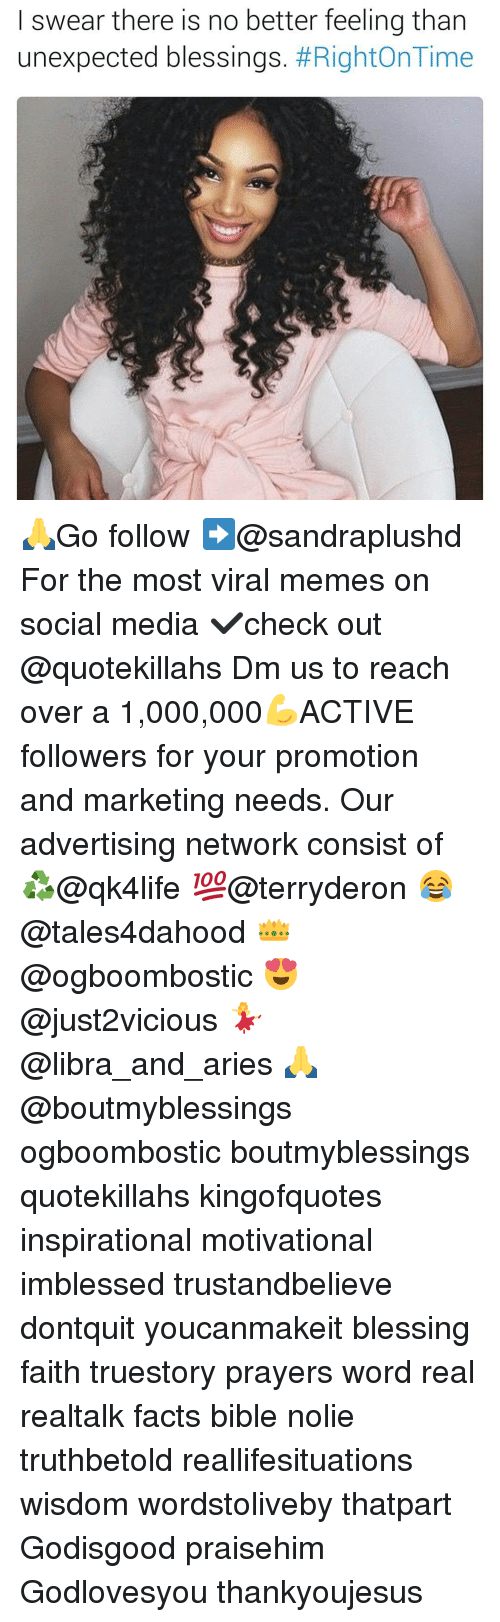 Unexpectancy: swear there is no better feeling than  unexpected blessings  Right On Time 🙏Go follow ➡@sandraplushd For the most viral memes on social media ✔check out @quotekillahs Dm us to reach over a 1,000,000💪ACTIVE followers for your promotion and marketing needs. Our advertising network consist of ♻@qk4life 💯@terryderon 😂@tales4dahood 👑@ogboombostic 😍@just2vicious 💃@libra_and_aries 🙏@boutmyblessings ogboombostic boutmyblessings quotekillahs kingofquotes inspirational motivational imblessed trustandbelieve dontquit youcanmakeit blessing faith truestory prayers word real realtalk facts bible nolie truthbetold reallifesituations wisdom wordstoliveby thatpart Godisgood praisehim Godlovesyou thankyoujesus